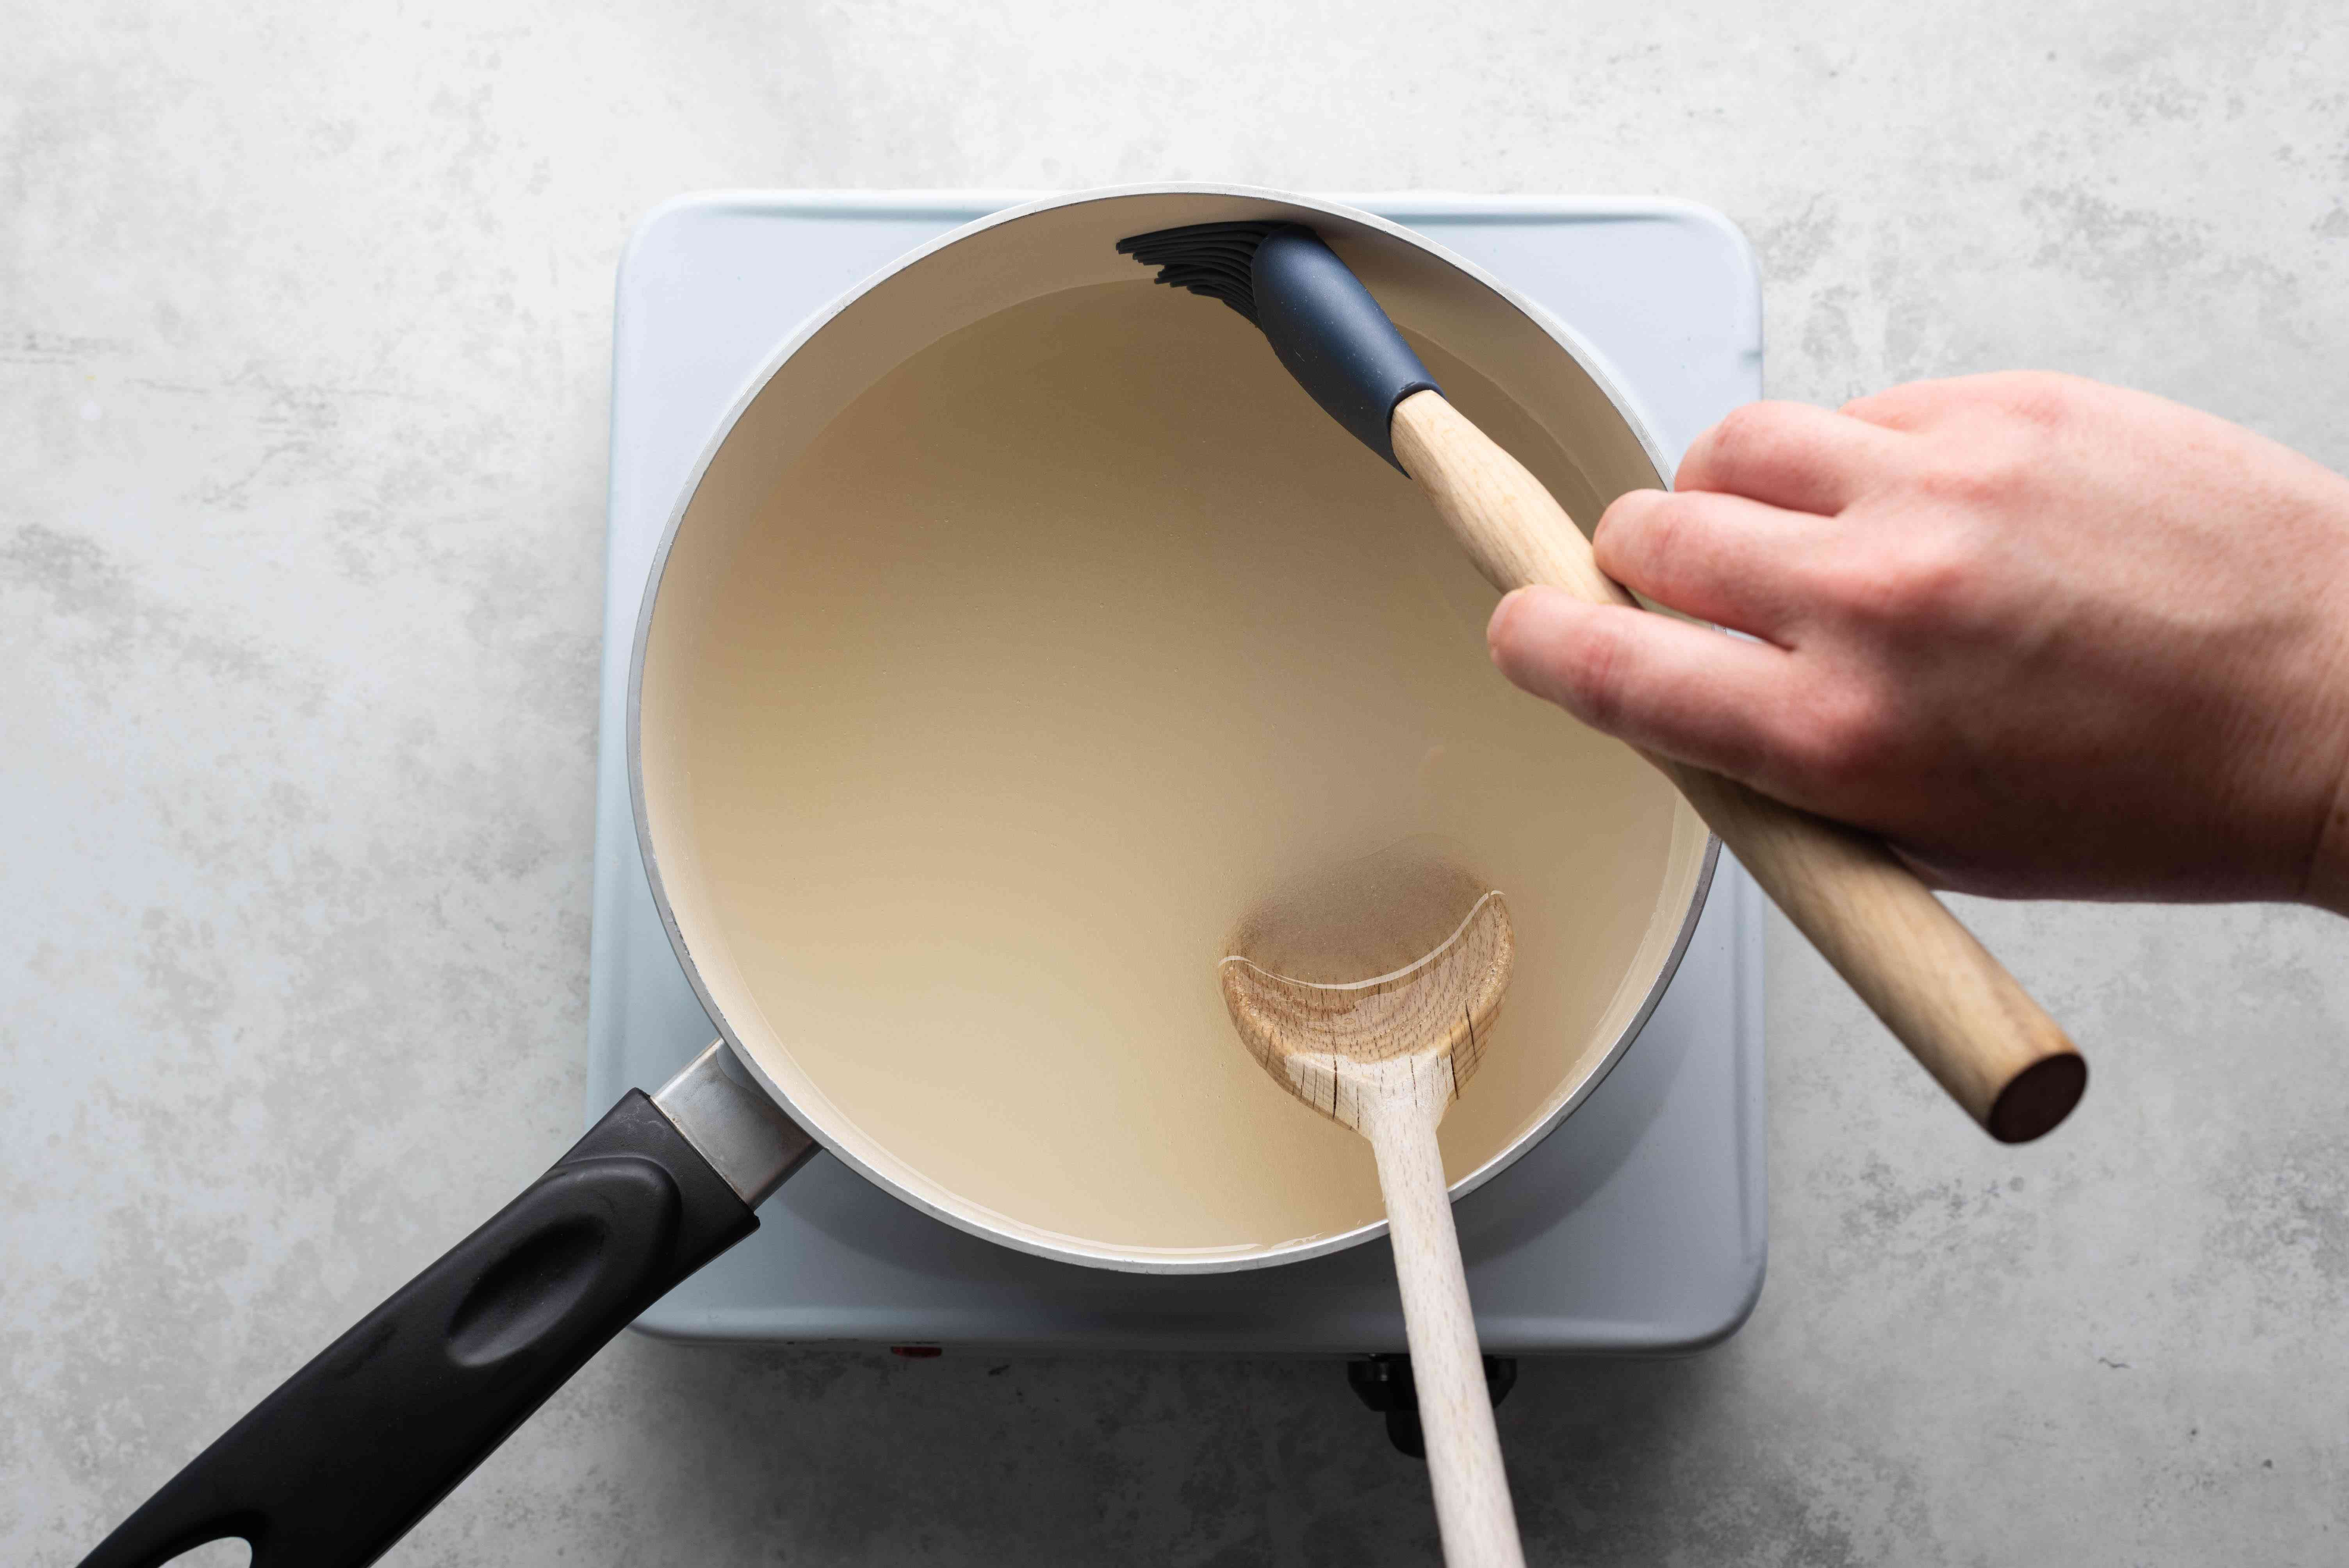 brush down the sides of the pan with a wet pastry brush to remove any stray sugar crystals